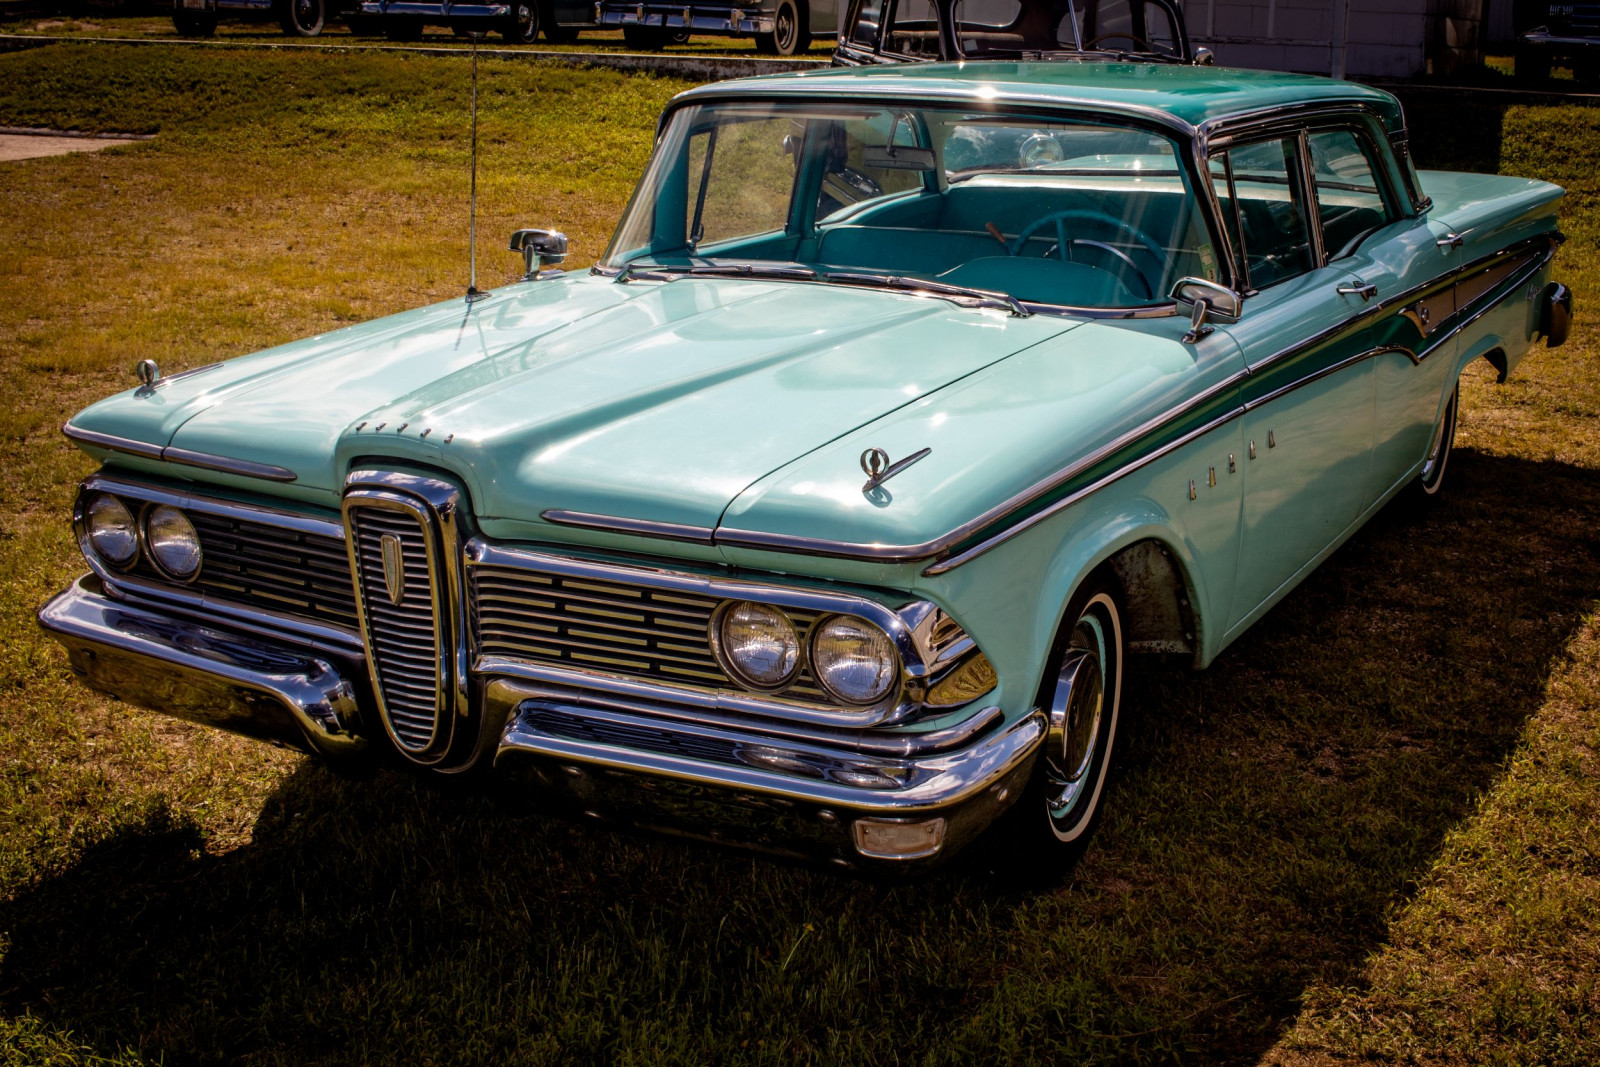 1959 Edsel Corsair 4dr Sedan - Image 1